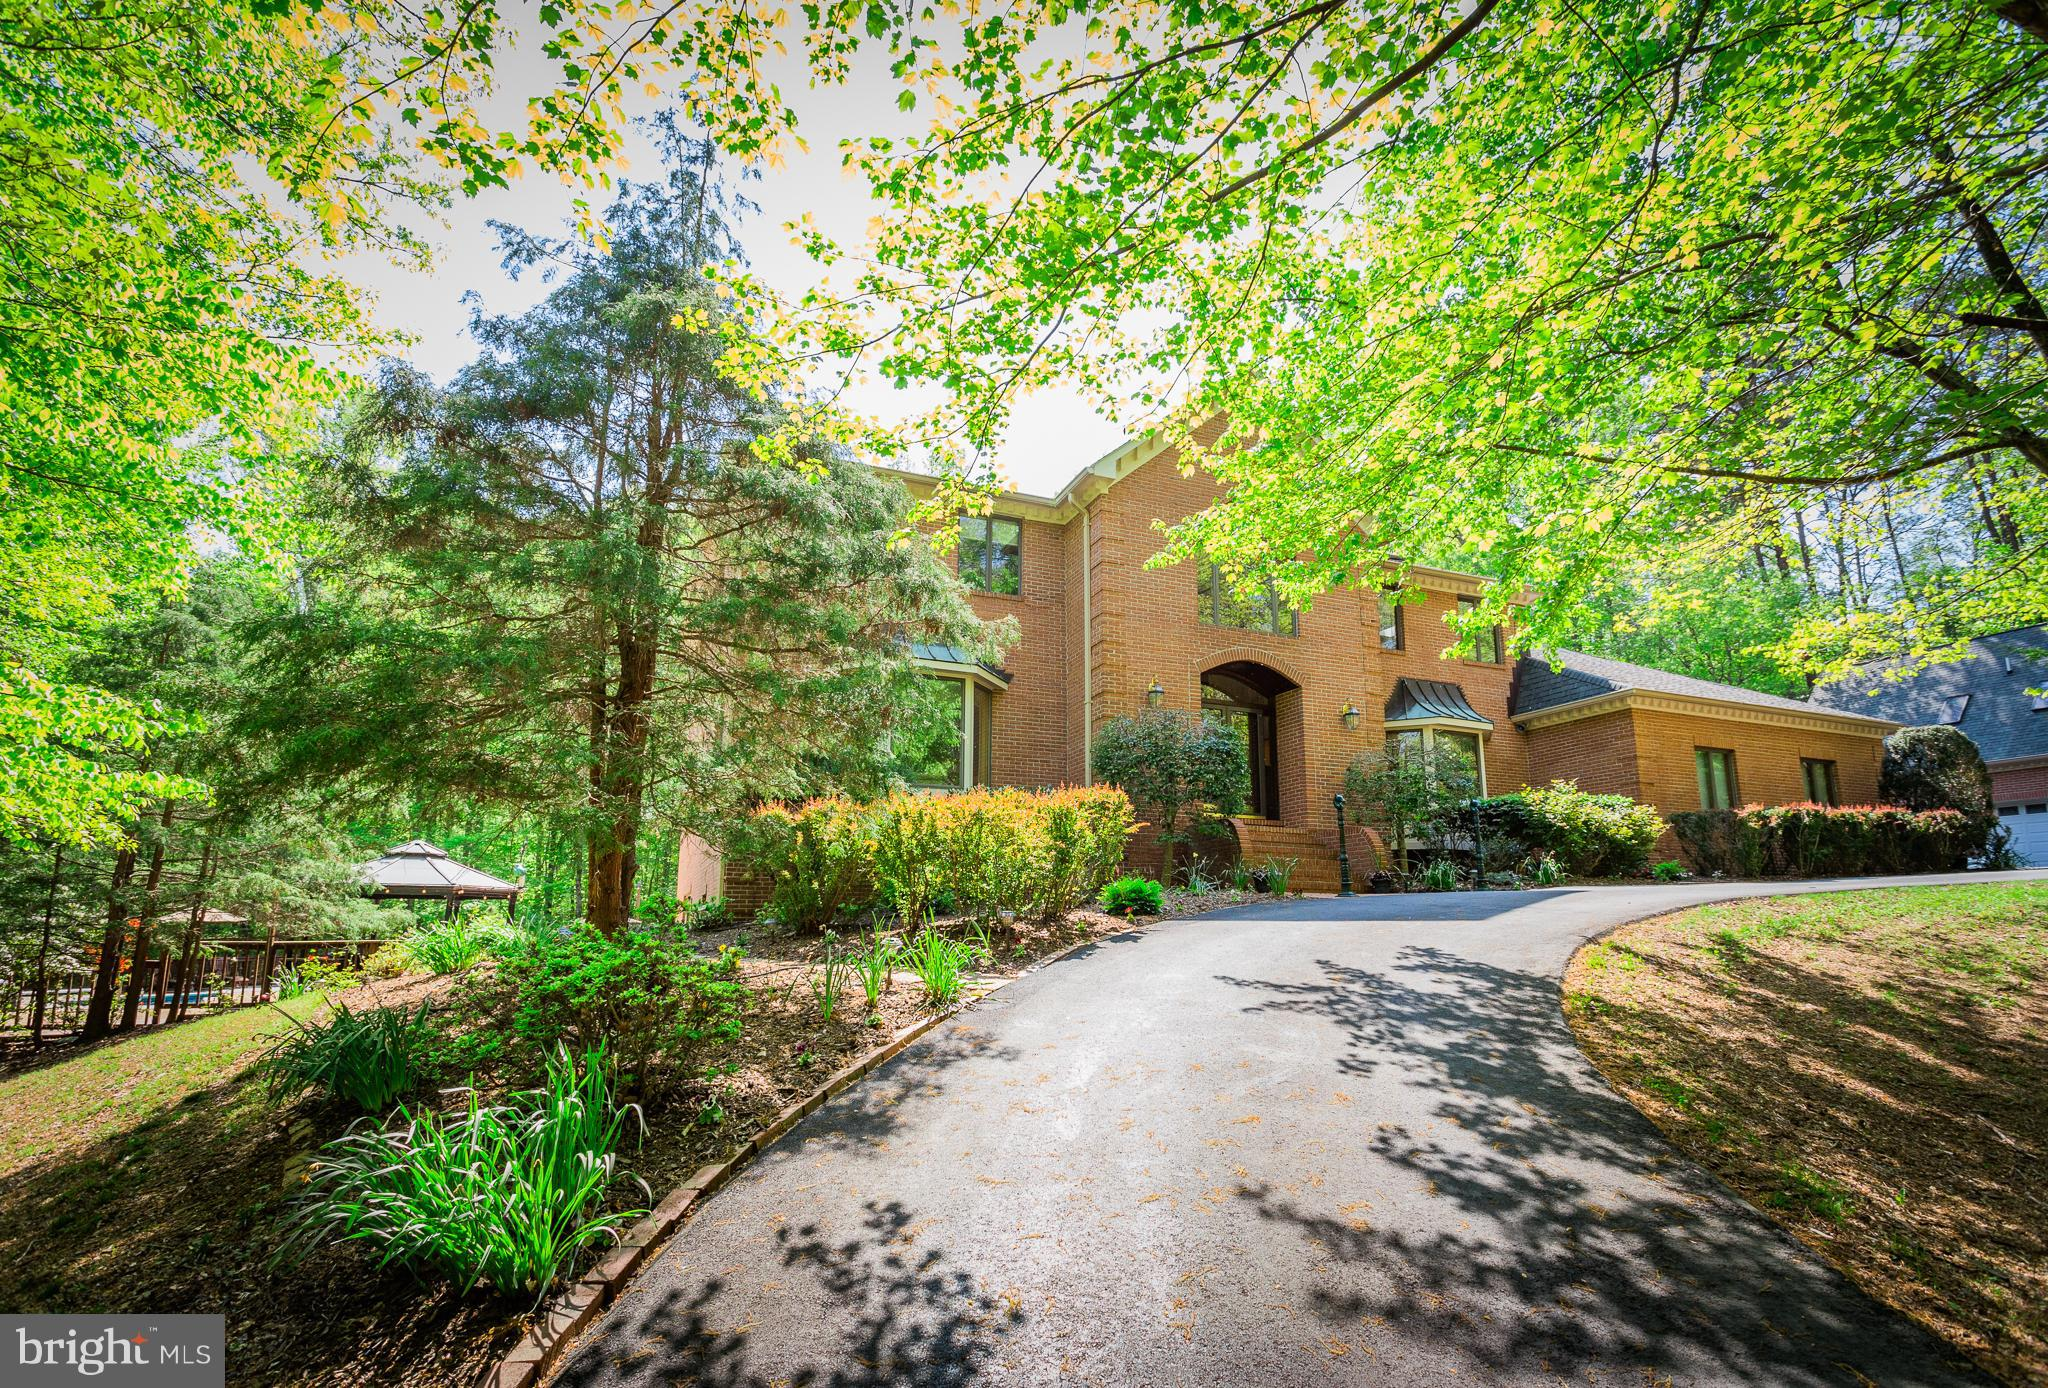 Relax, unwind & entertain w/ease! All-brick custom Colonial on 5-priv acres w/pool, decks, carriage house, 2 garages & pond view in equestrian Summerwind! Grand spacious open rooms & views w/4FPs!  Guest BR Ste main lvl! Vaulted/skylights & high end appliances  in Granite Kitchen ! Balcony, SitRm, FP in MBR! LL Entertainment w/Theatre, Gym, Aerobic Rm, Dens, FBAs & FP! Freshly  painted 8/18. NICE!